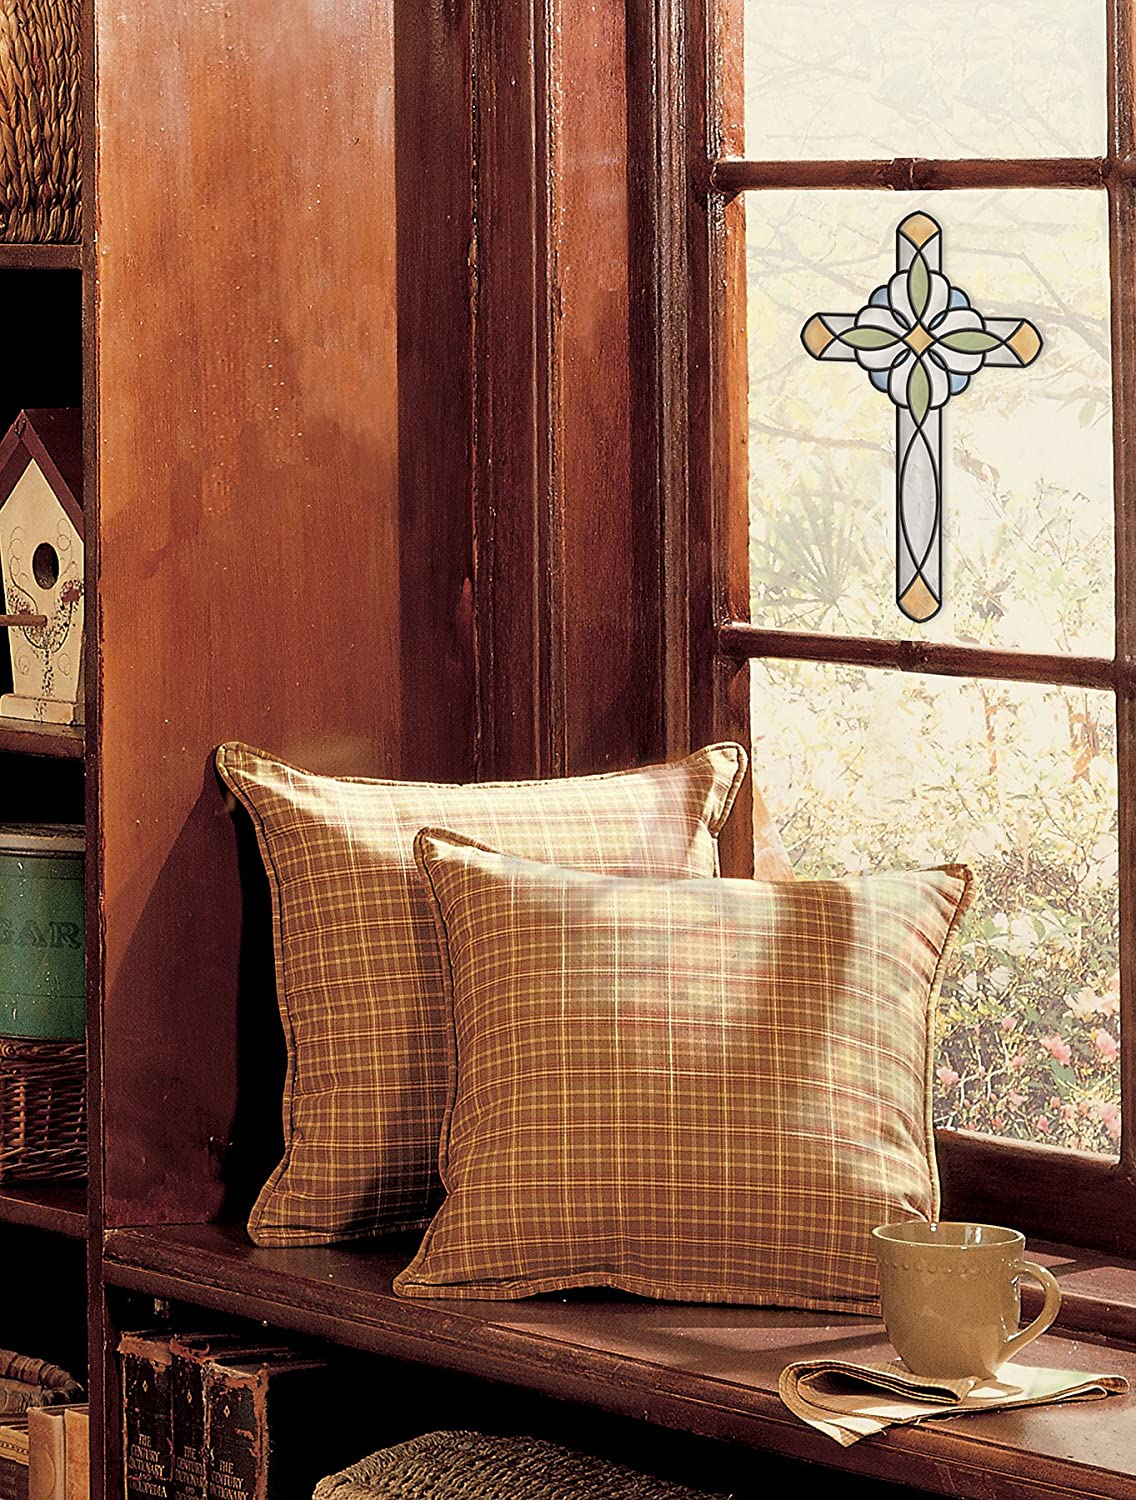 Brewster SG0372 7.7-Inch-by-10.5-Inch Amber Blue Cross Stained Glass Applique Brewster Wallcovering Co